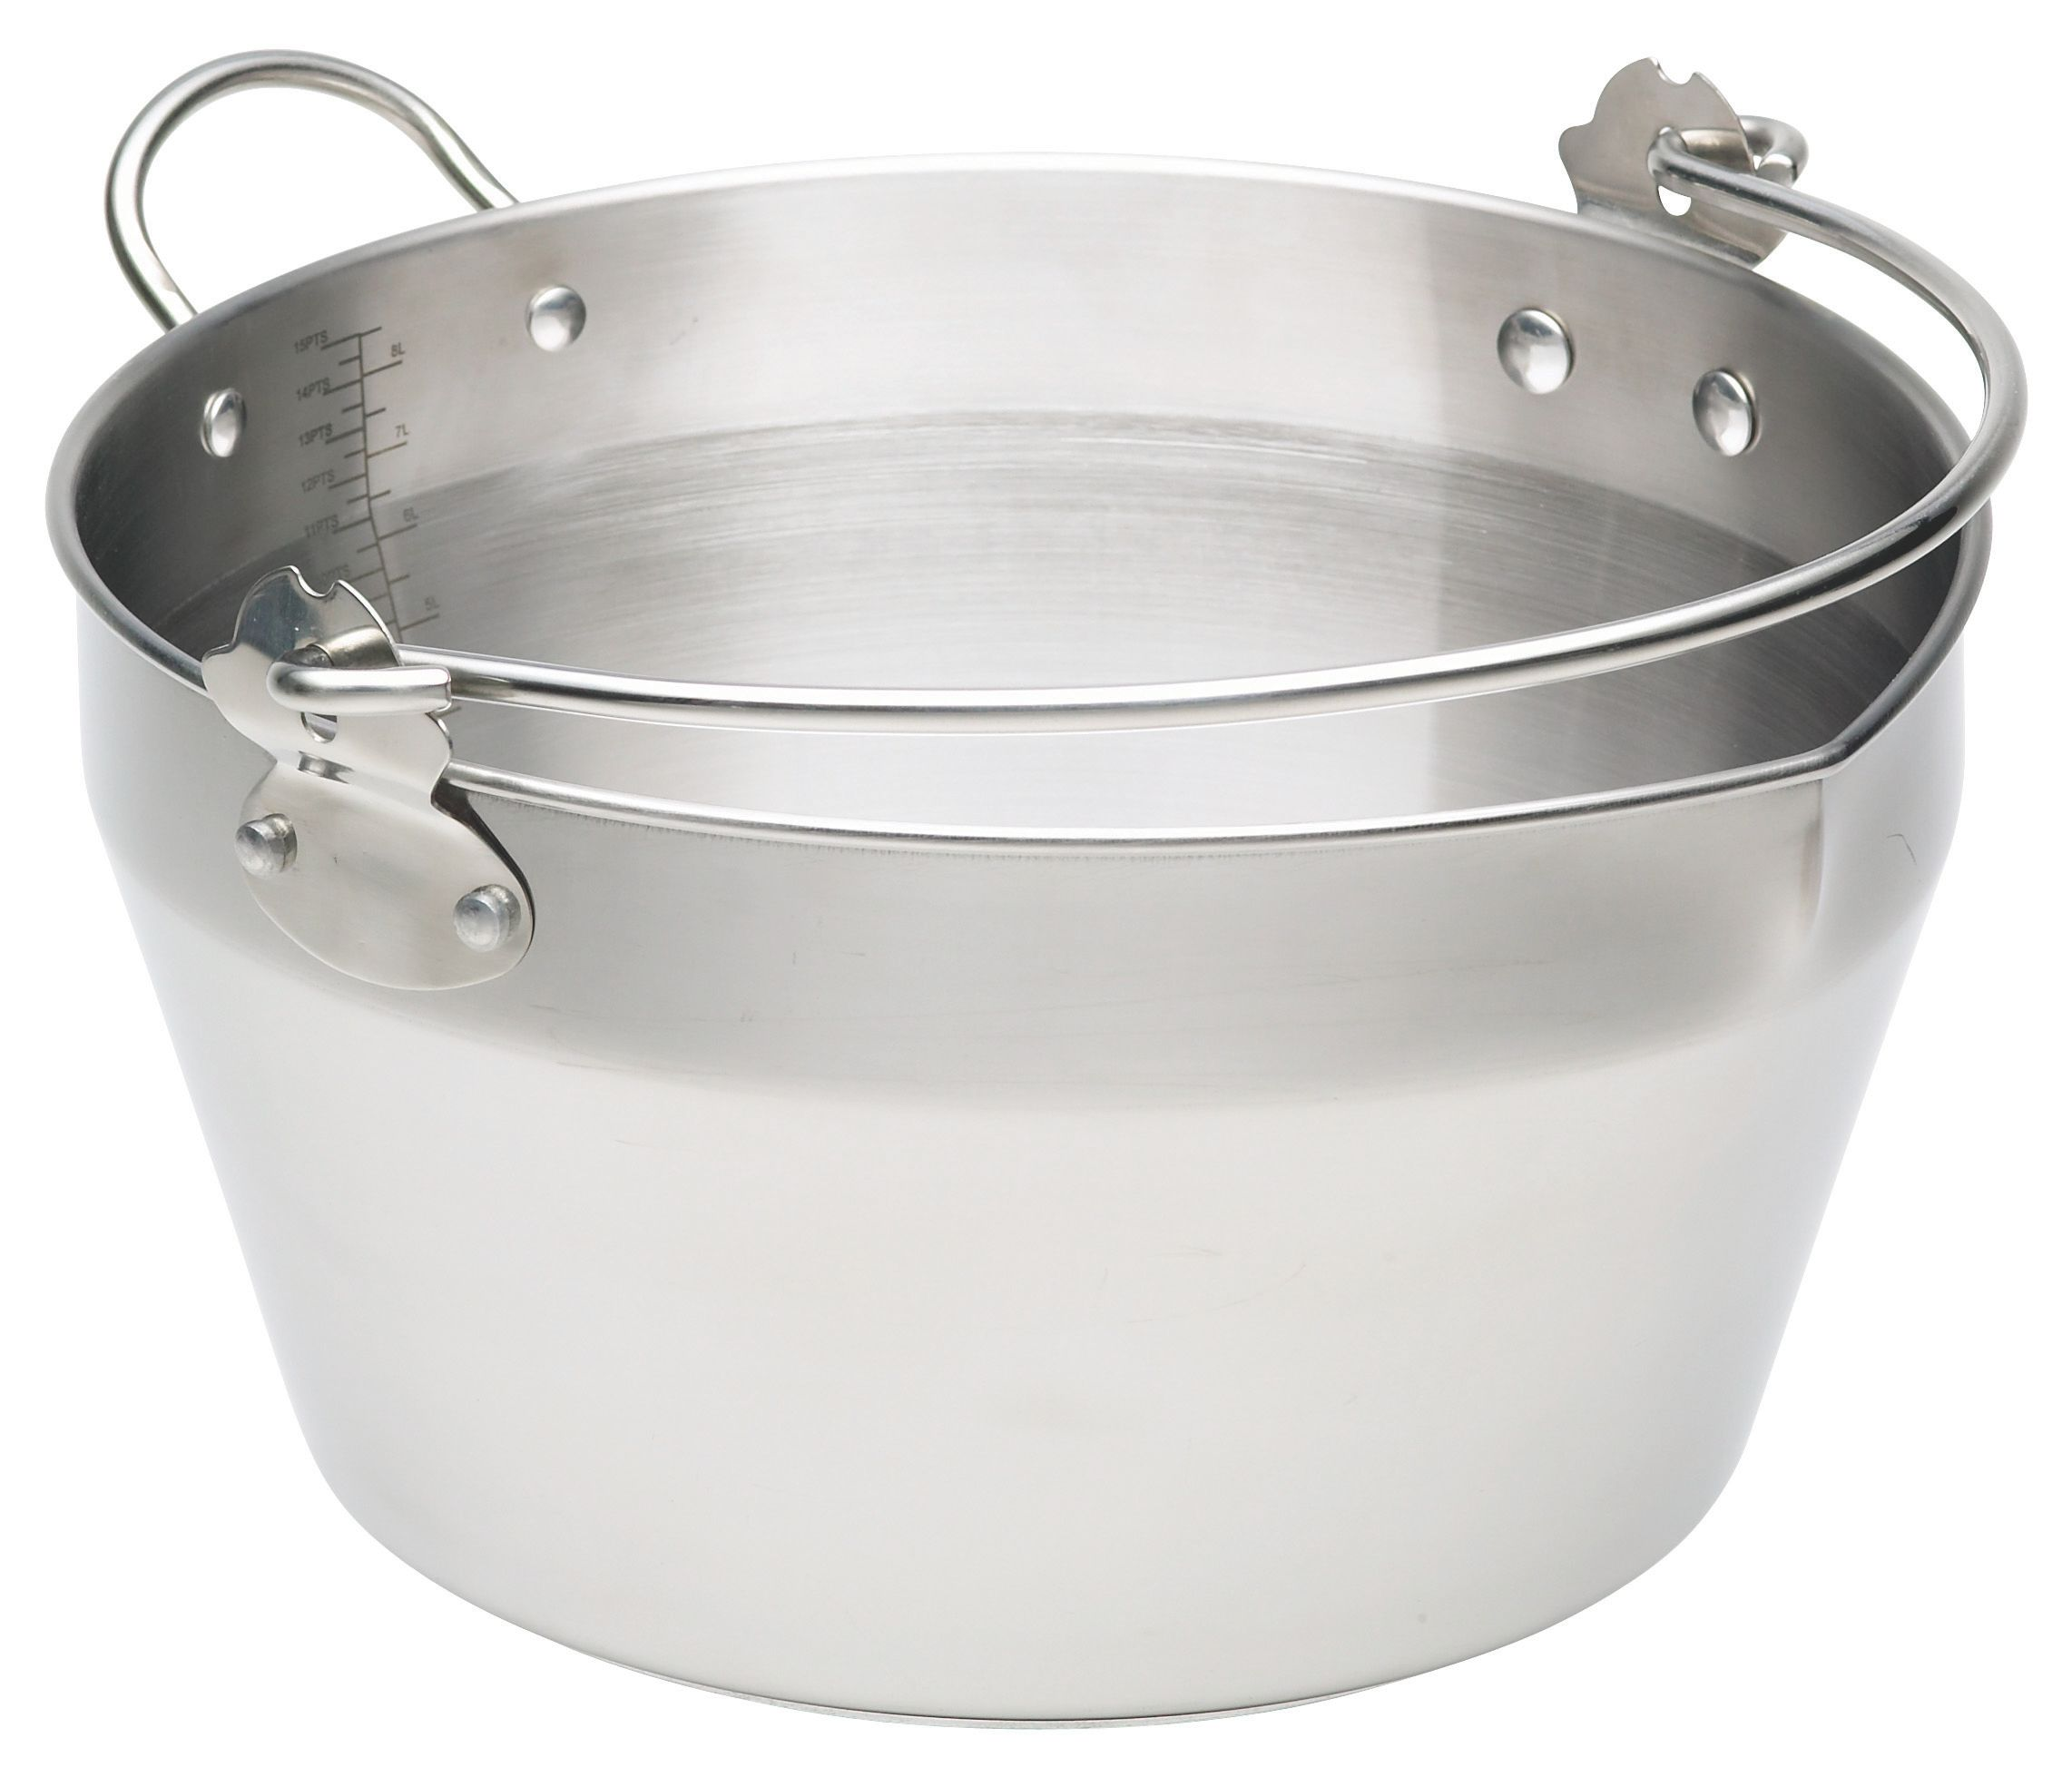 Professional Stainless Steel Maslin Pan